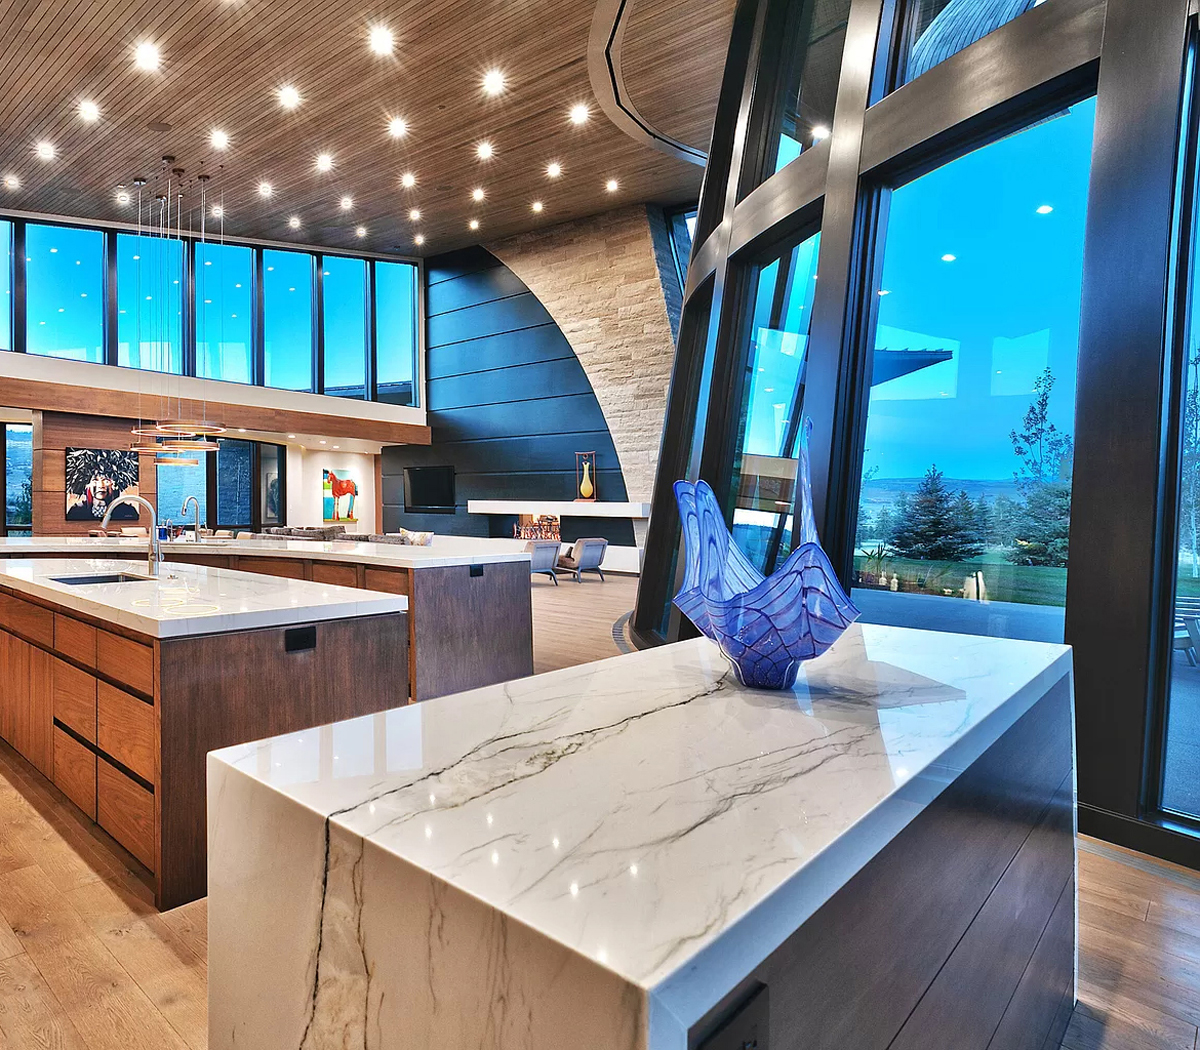 Interior view of kitchen marble countertops